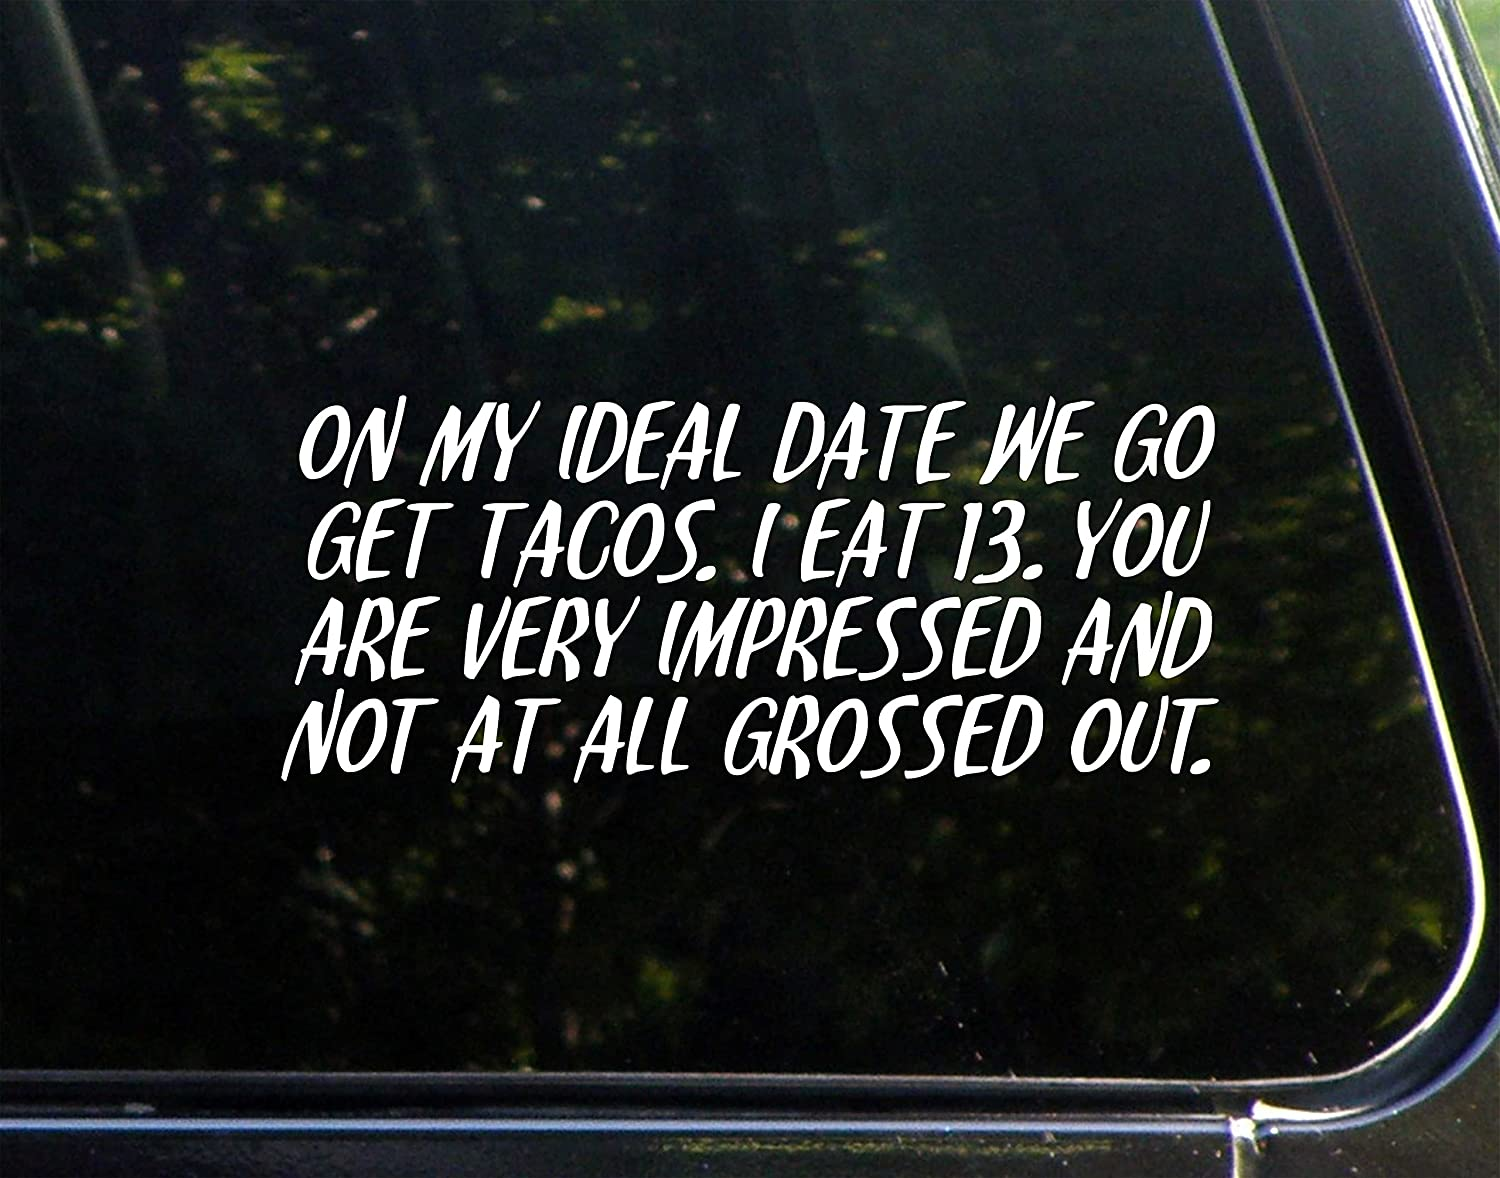 On My Ideal Date We Go Get Tacos. I Eat 13. You are Very Impressed and Not at All Grossed Out.- 8-3/4